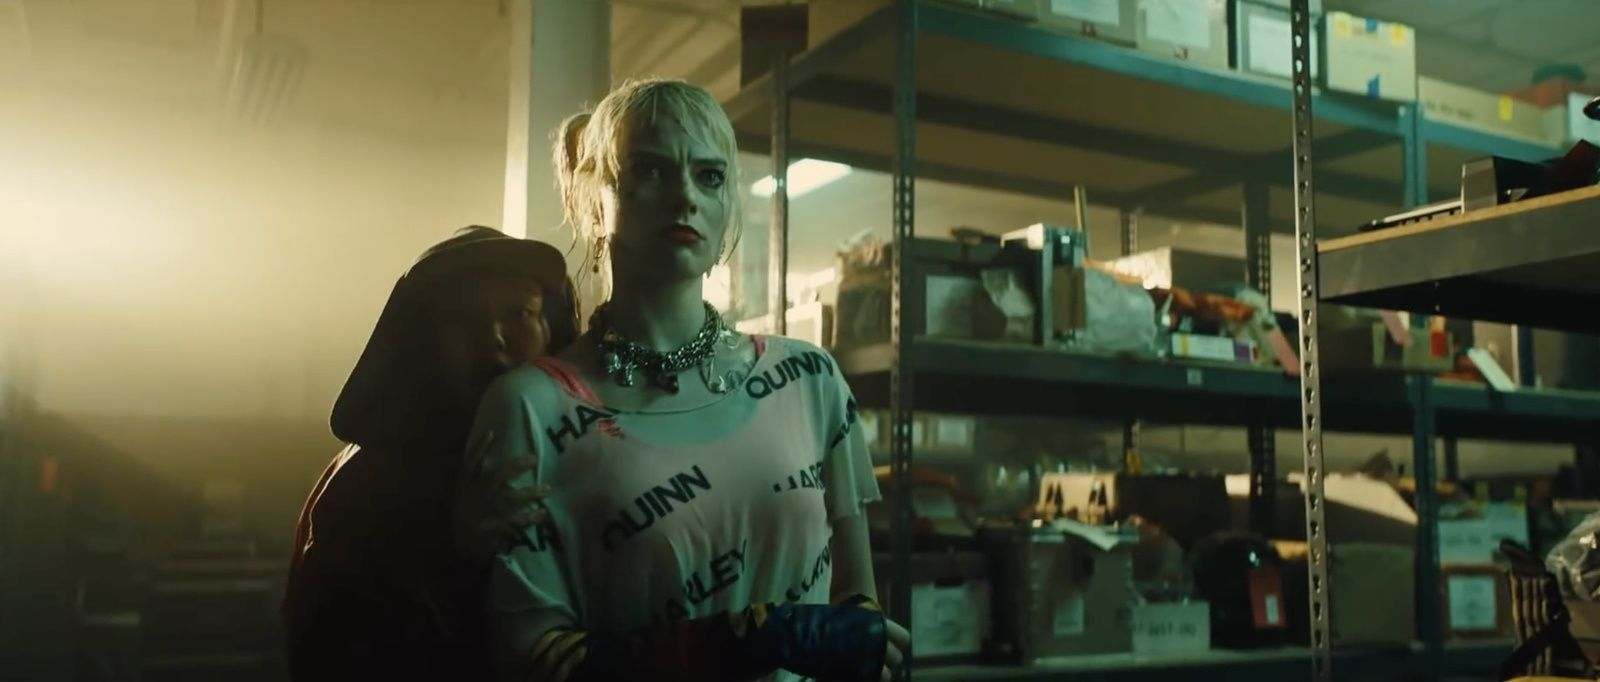 Bande-annonce, en version française, de Birds Of Prey, avec Margot Robbie.